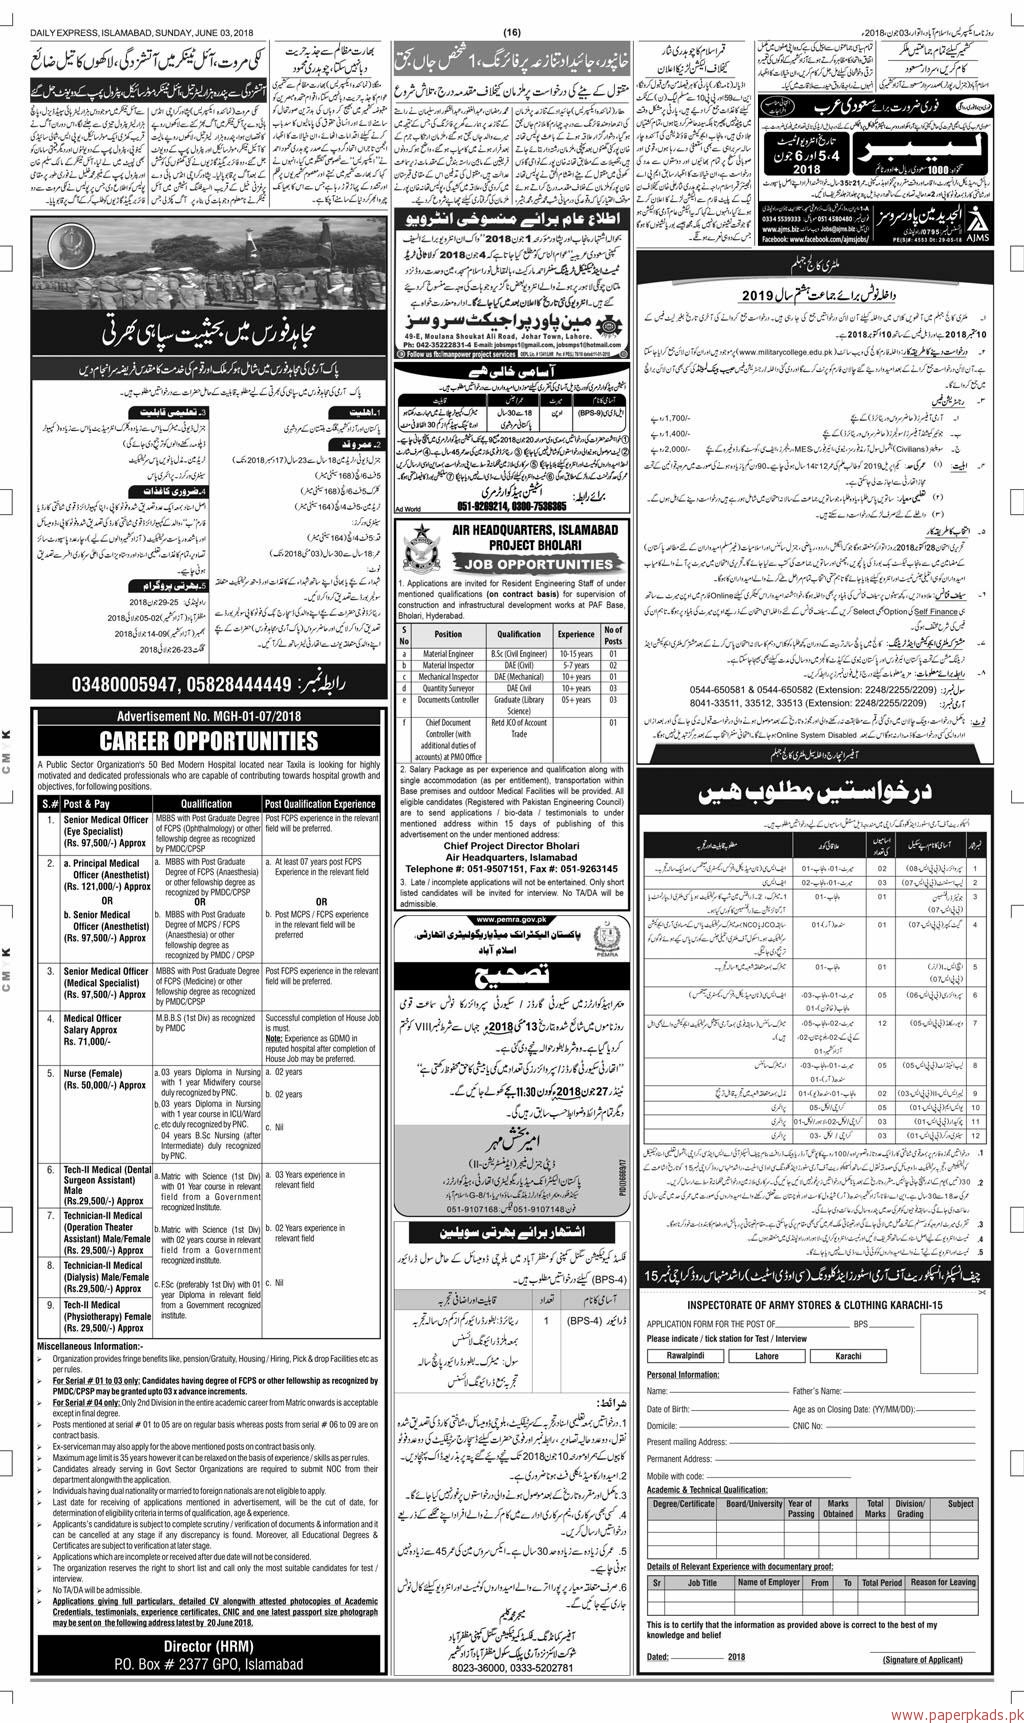 Multiple Jobs - Express Jobs ads 03 June 2018 Latest - Part 2